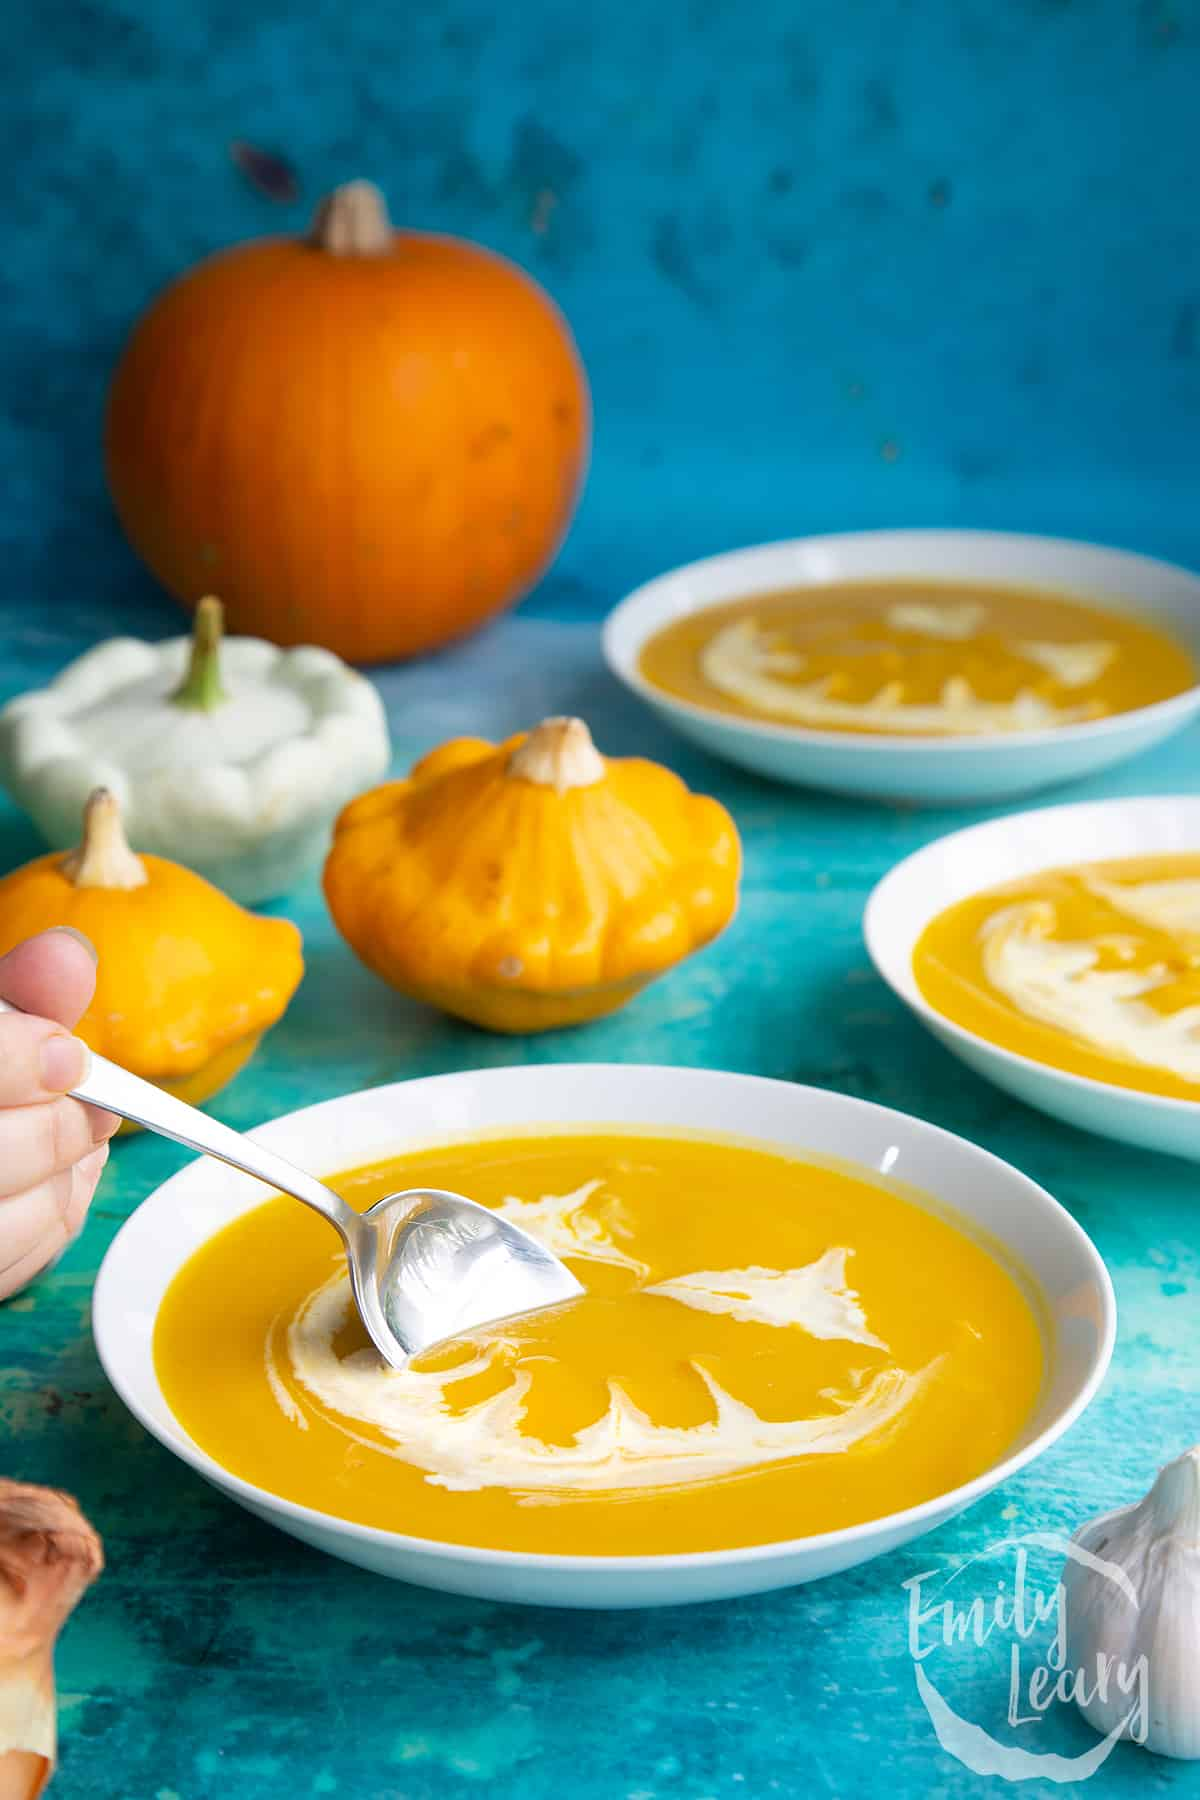 Pumpkin and sweet potato soup in a white bowl. The soup has cream swirled on top to resemble a jack'o'lantern. A hand holds a spoon, dipping into the soup.